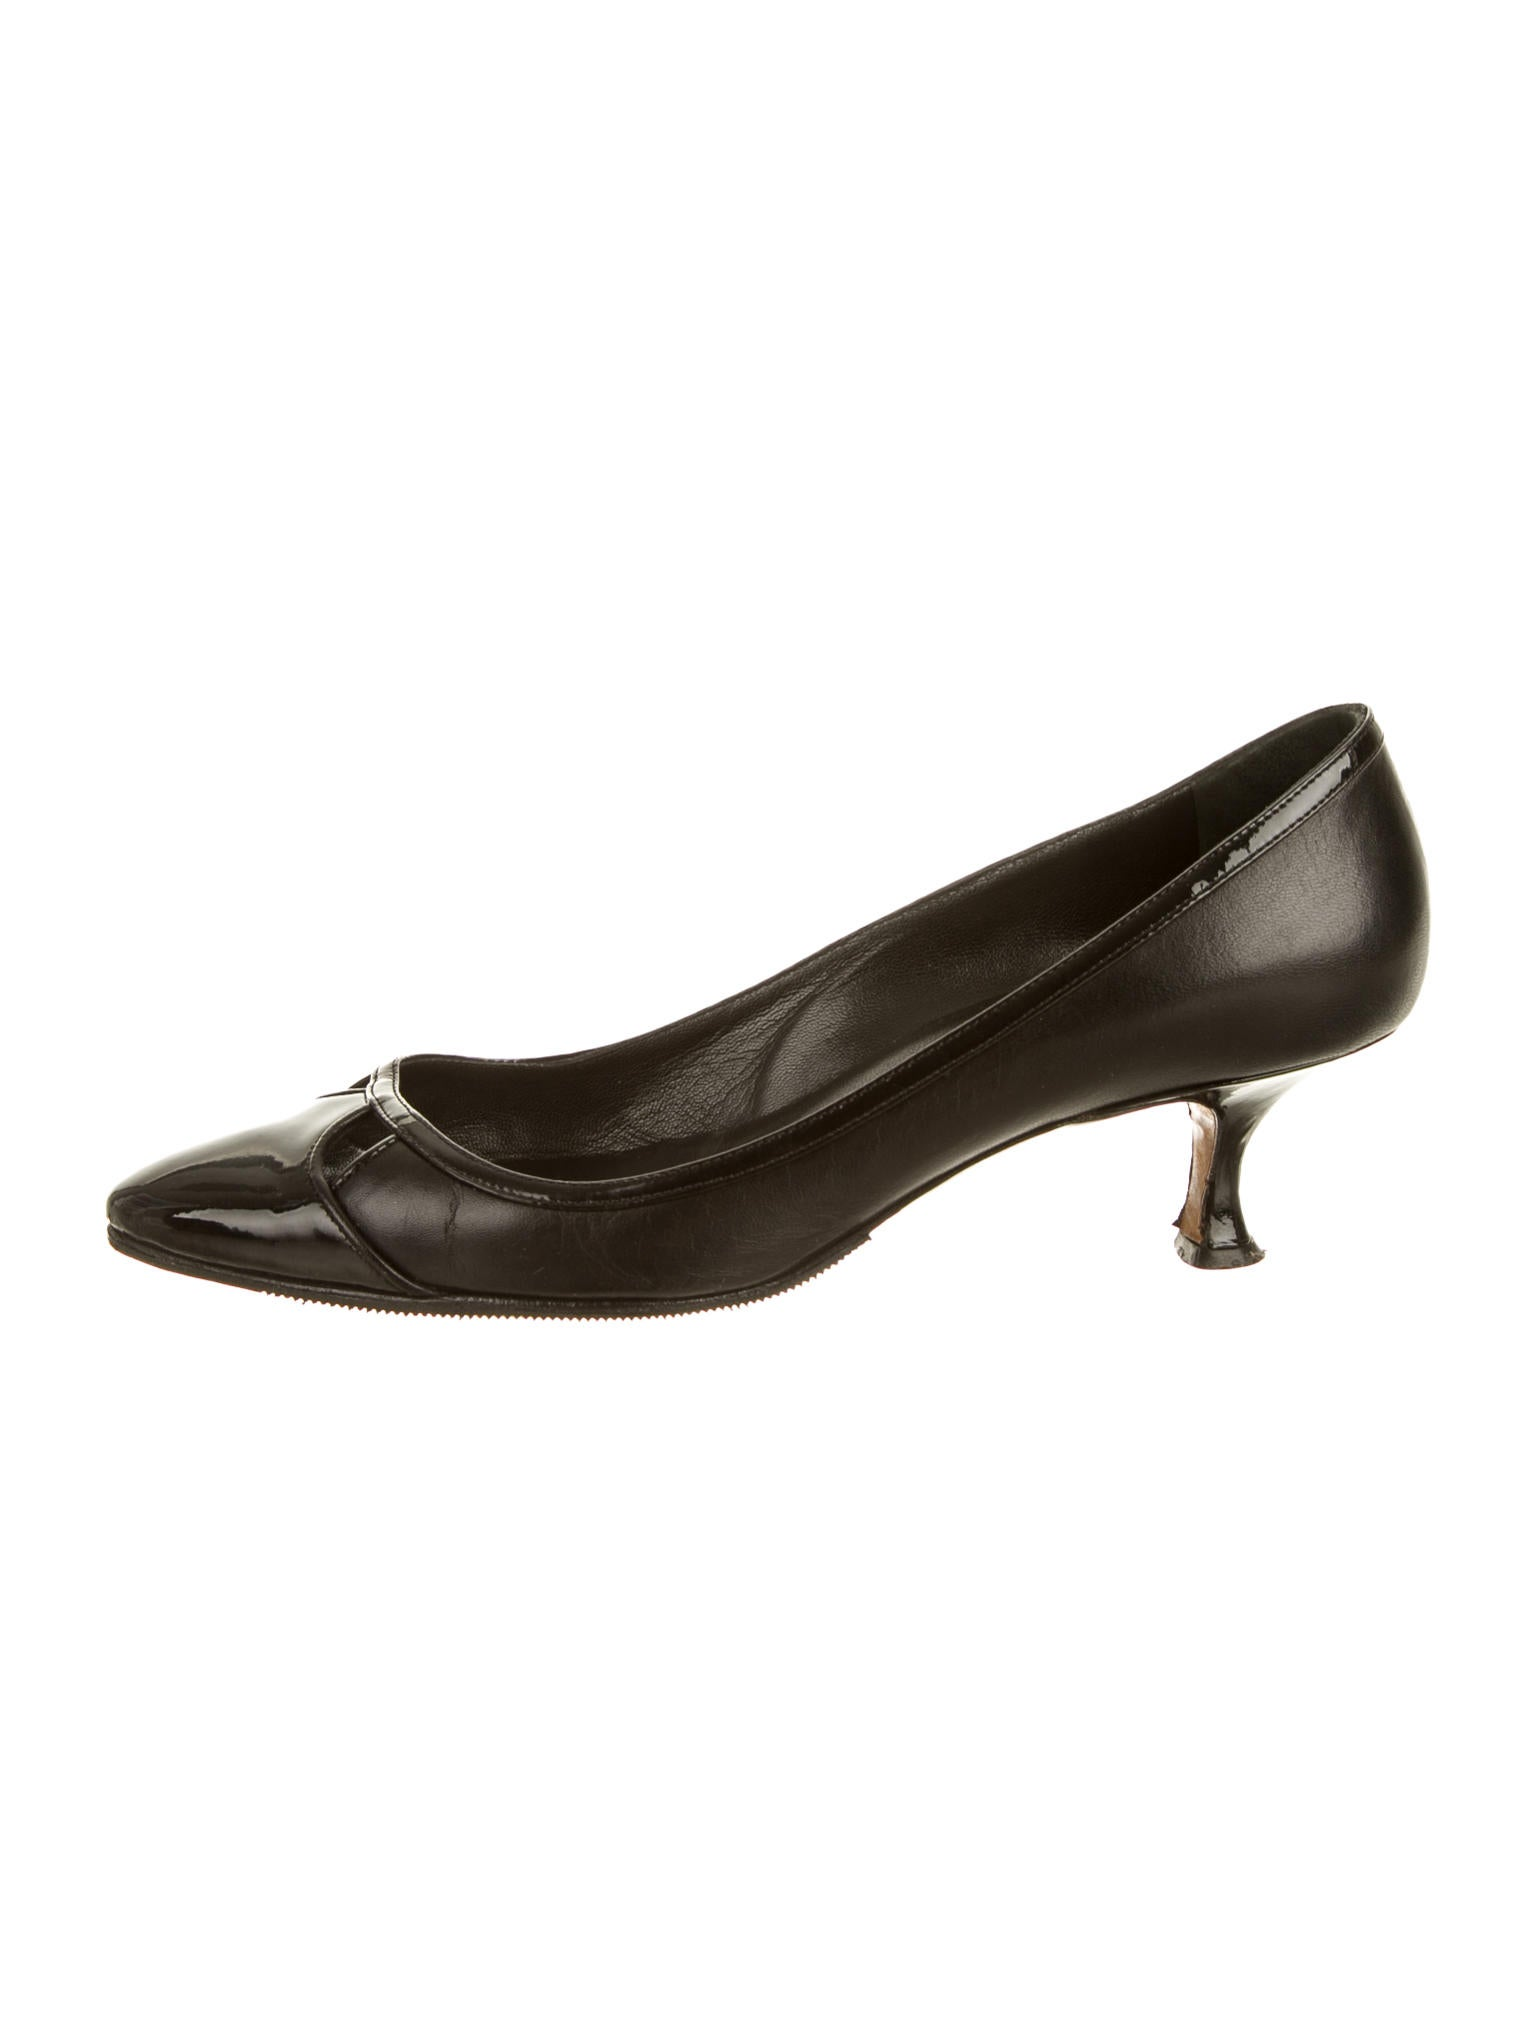 Manolo blahnik pumps shoes moo37343 the realreal for Shoes by manolo blahnik